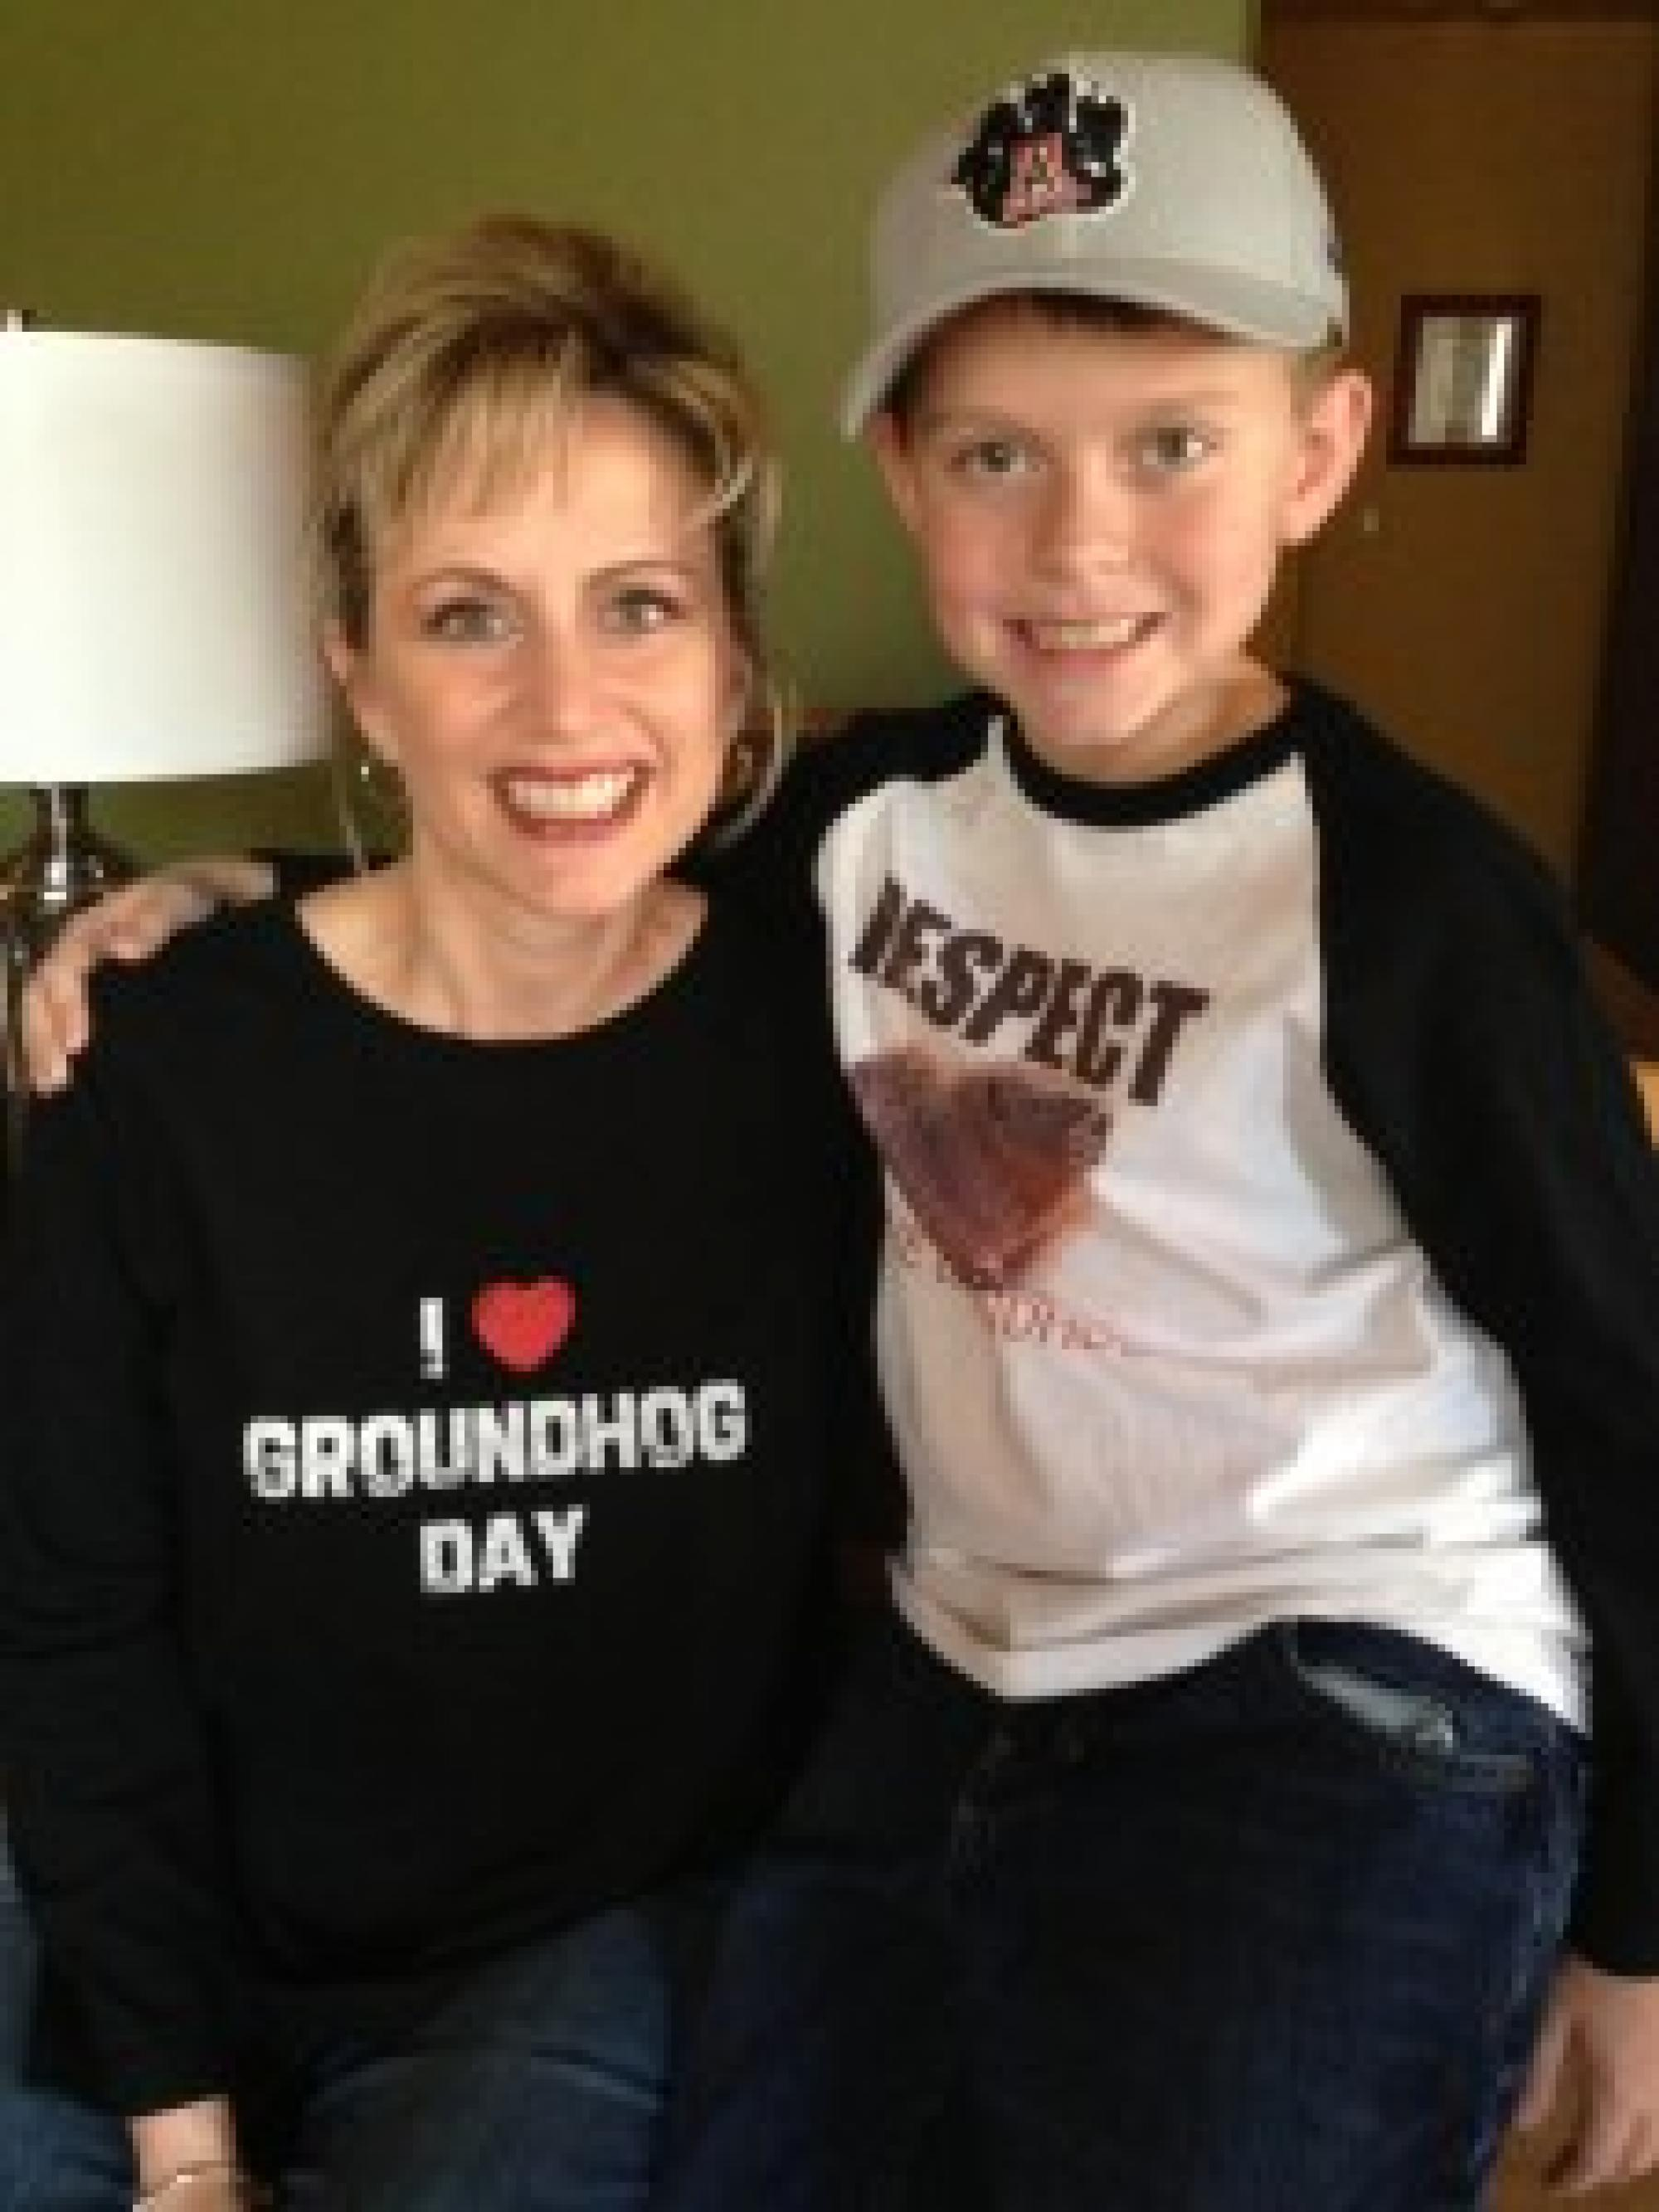 Meredith Mitstifer with her son, Ryan, is nearing her 14th year since being diagnosed with ovarian cancer.